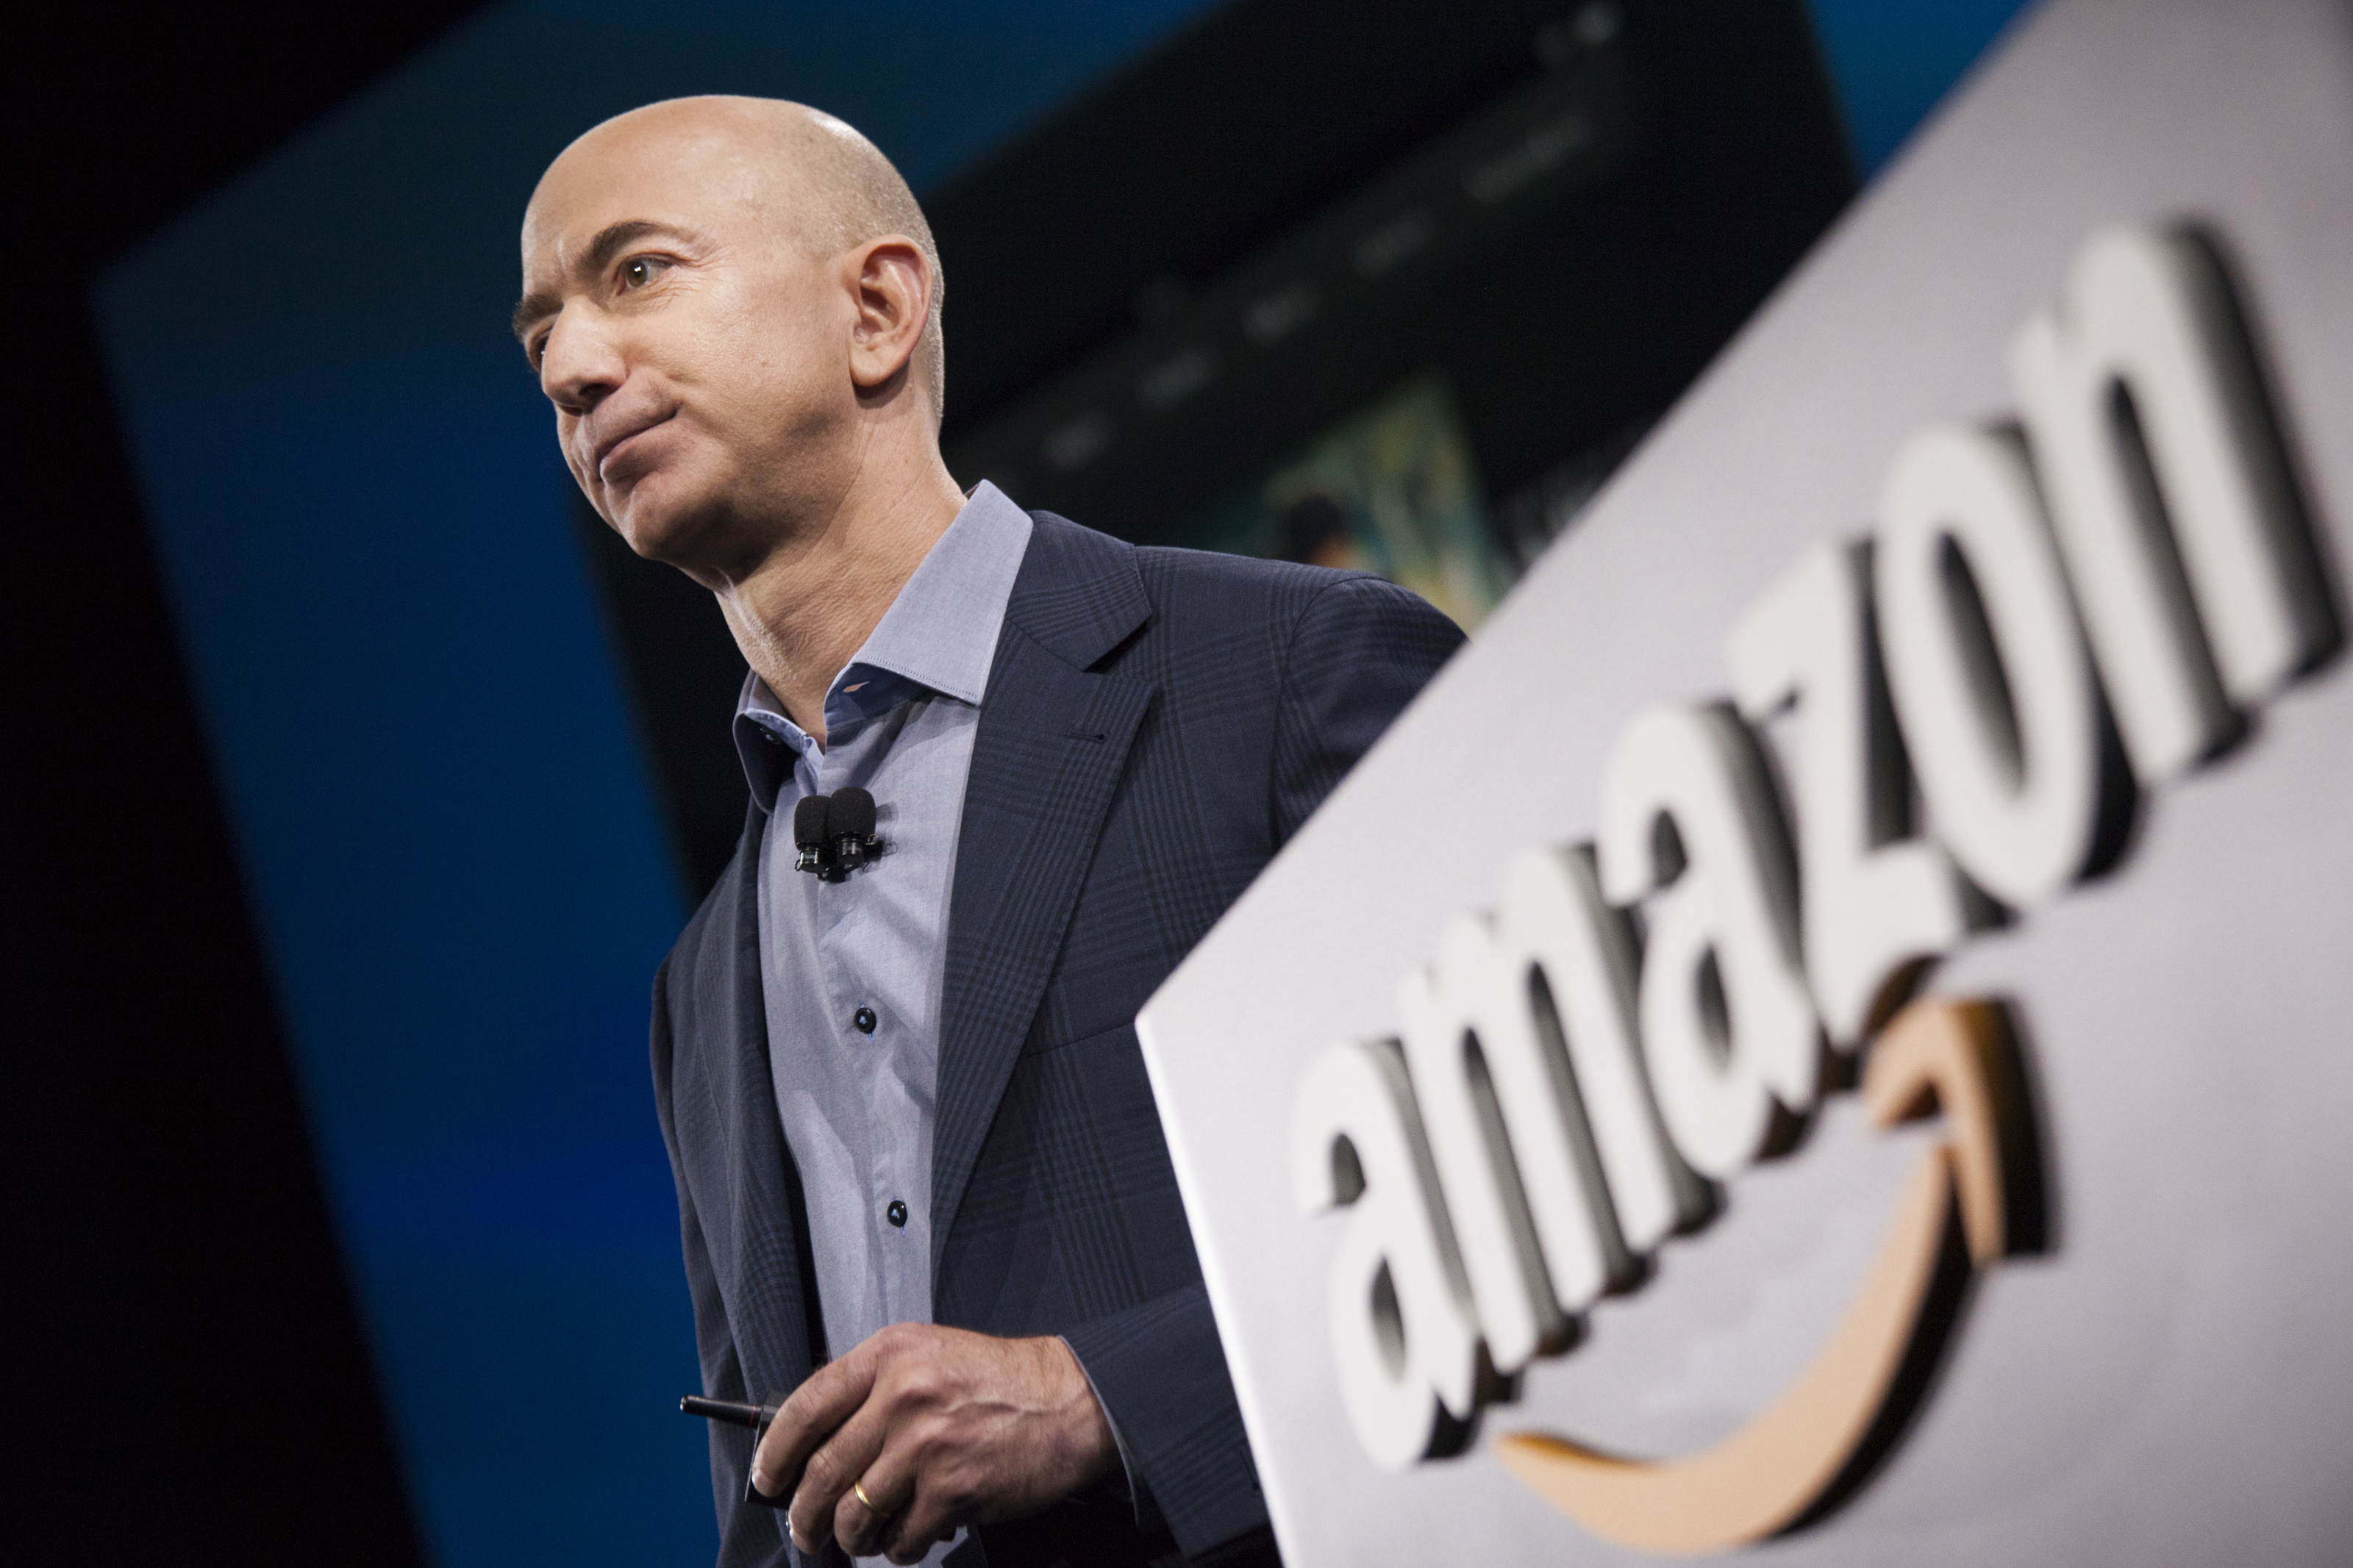 Amazon.com founder and CEO Jeff Bezos presents the company's first smartphone, the Fire Phone, in Seattle, on June 18, 2014.